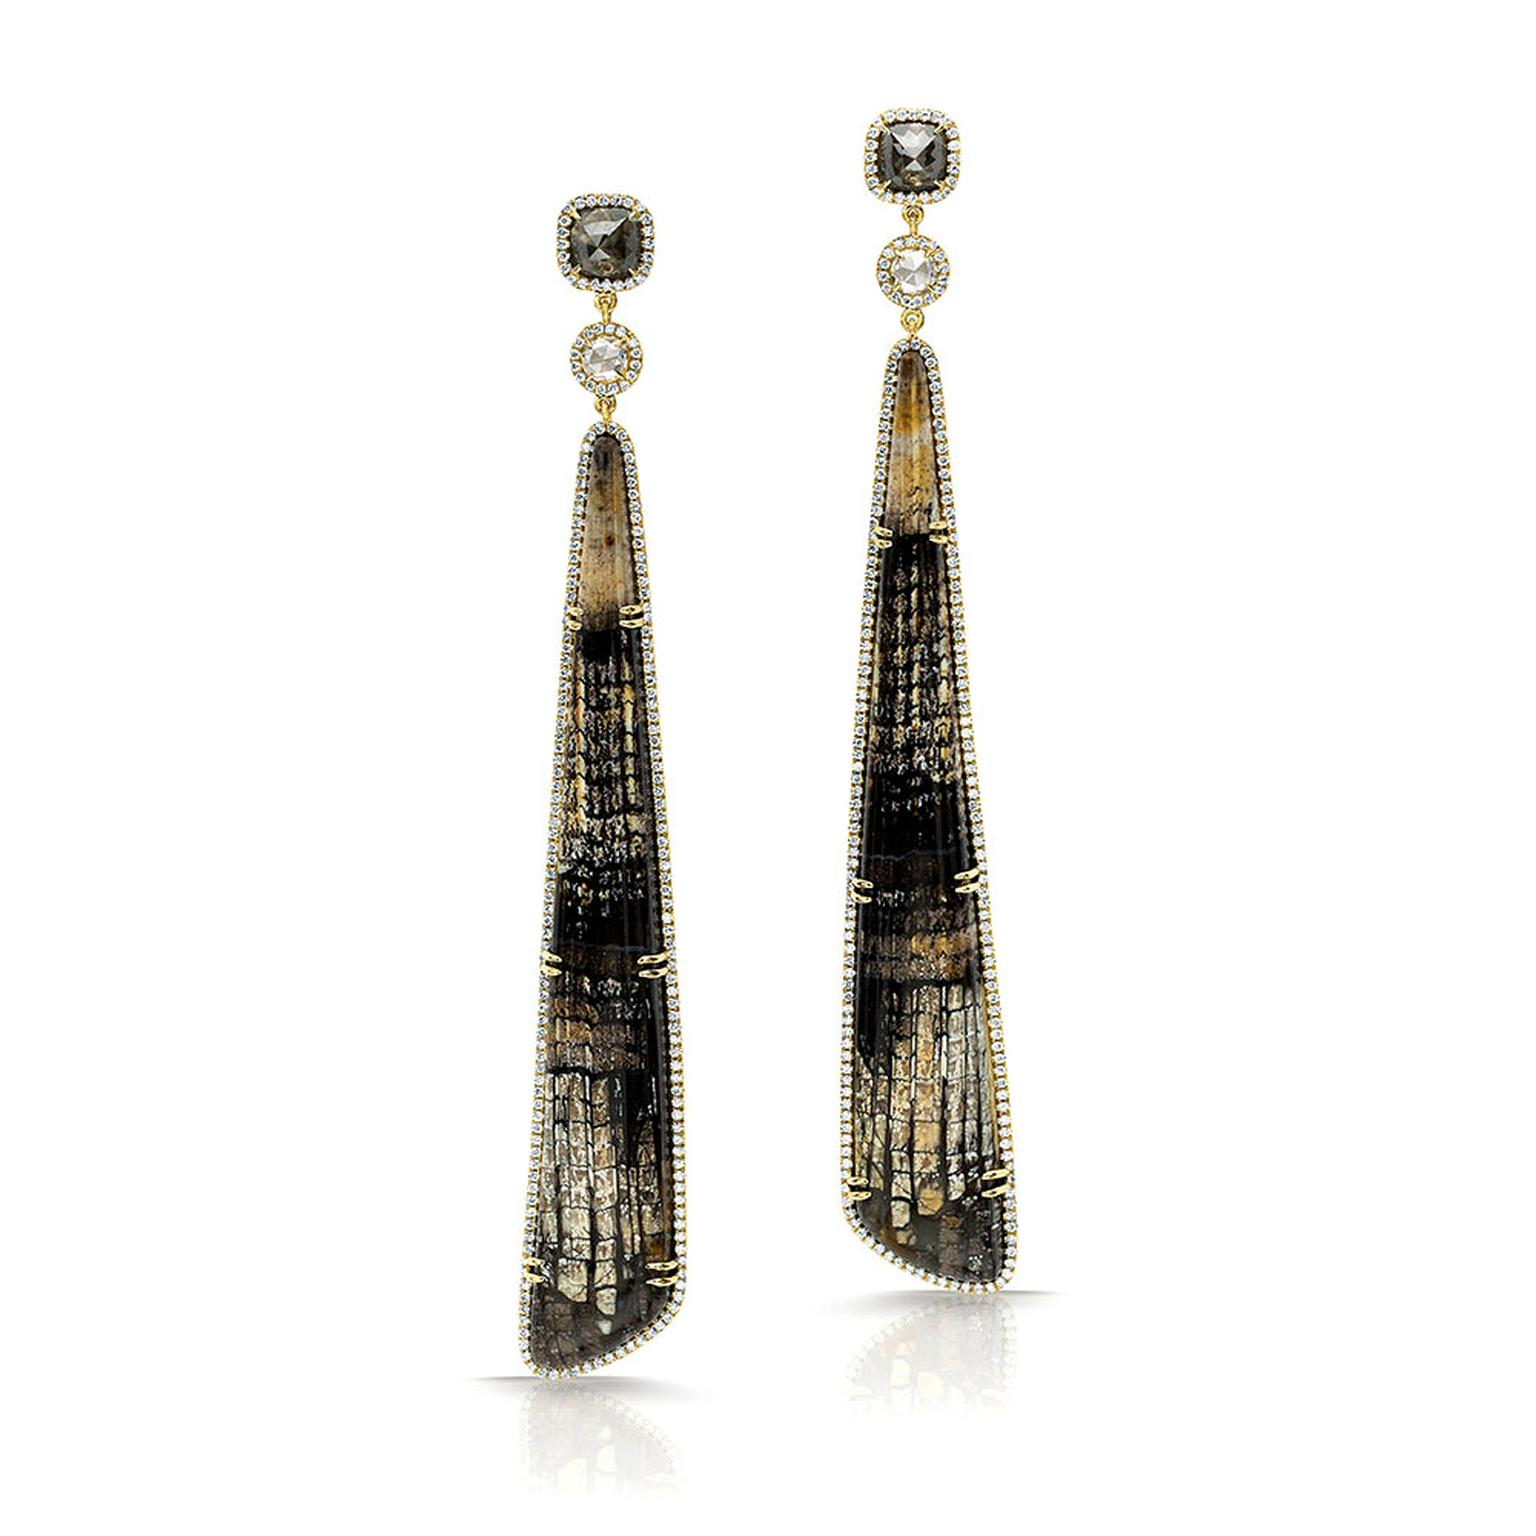 Pamela Huizenga long earrings